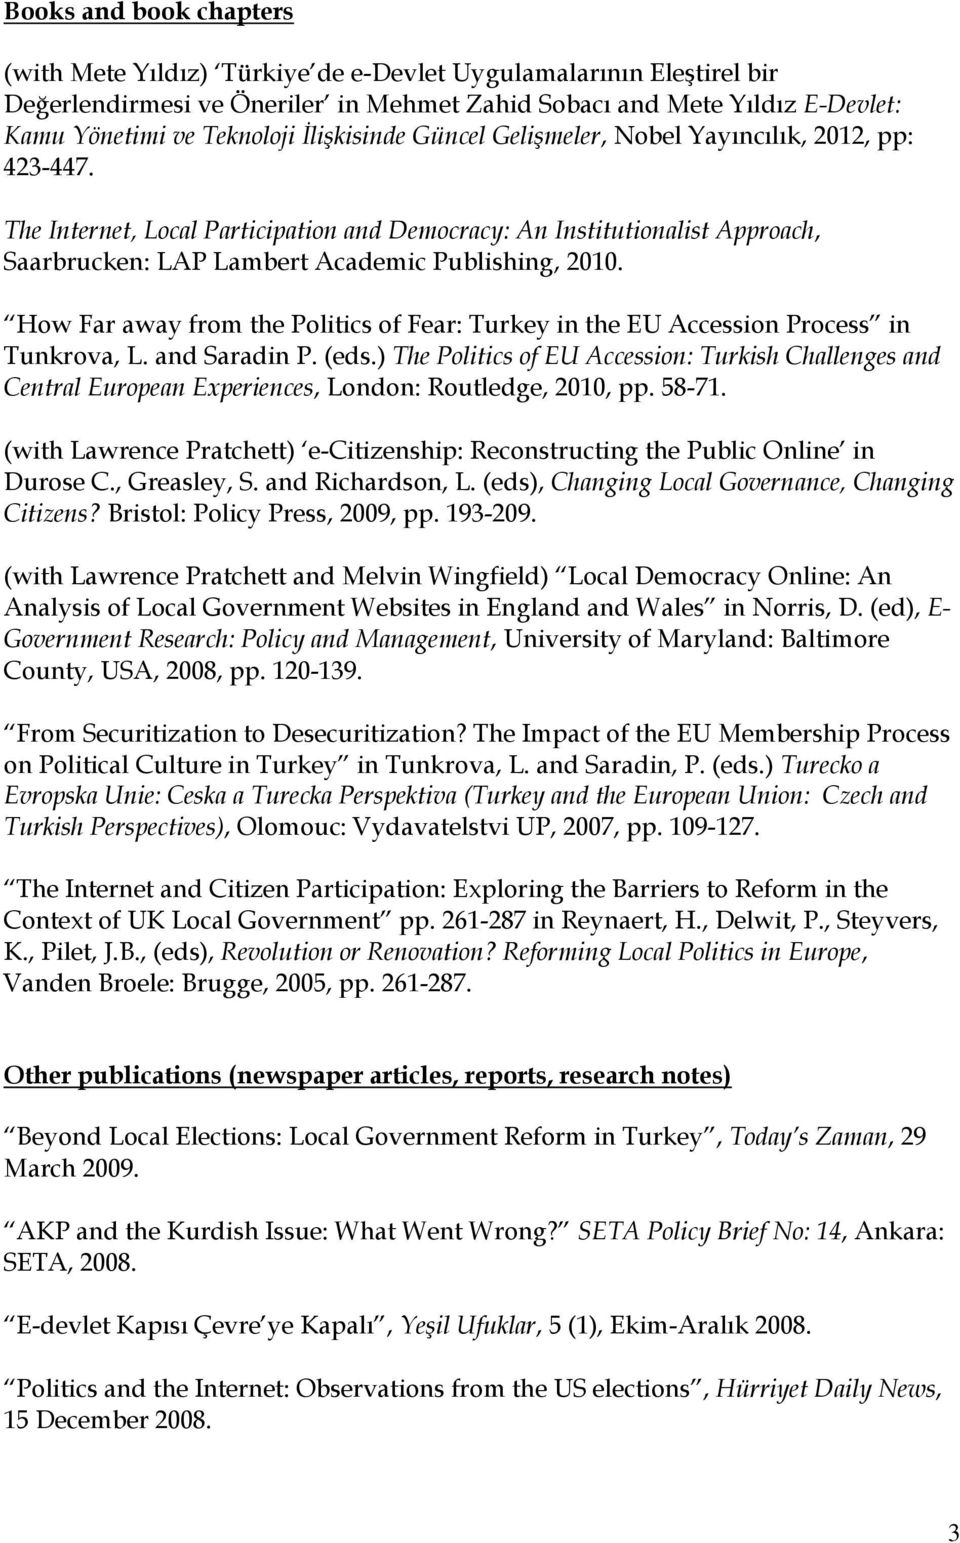 How Far away from the Politics of Fear: Turkey in the EU Accession Process in Tunkrova, L. and Saradin P. (eds.